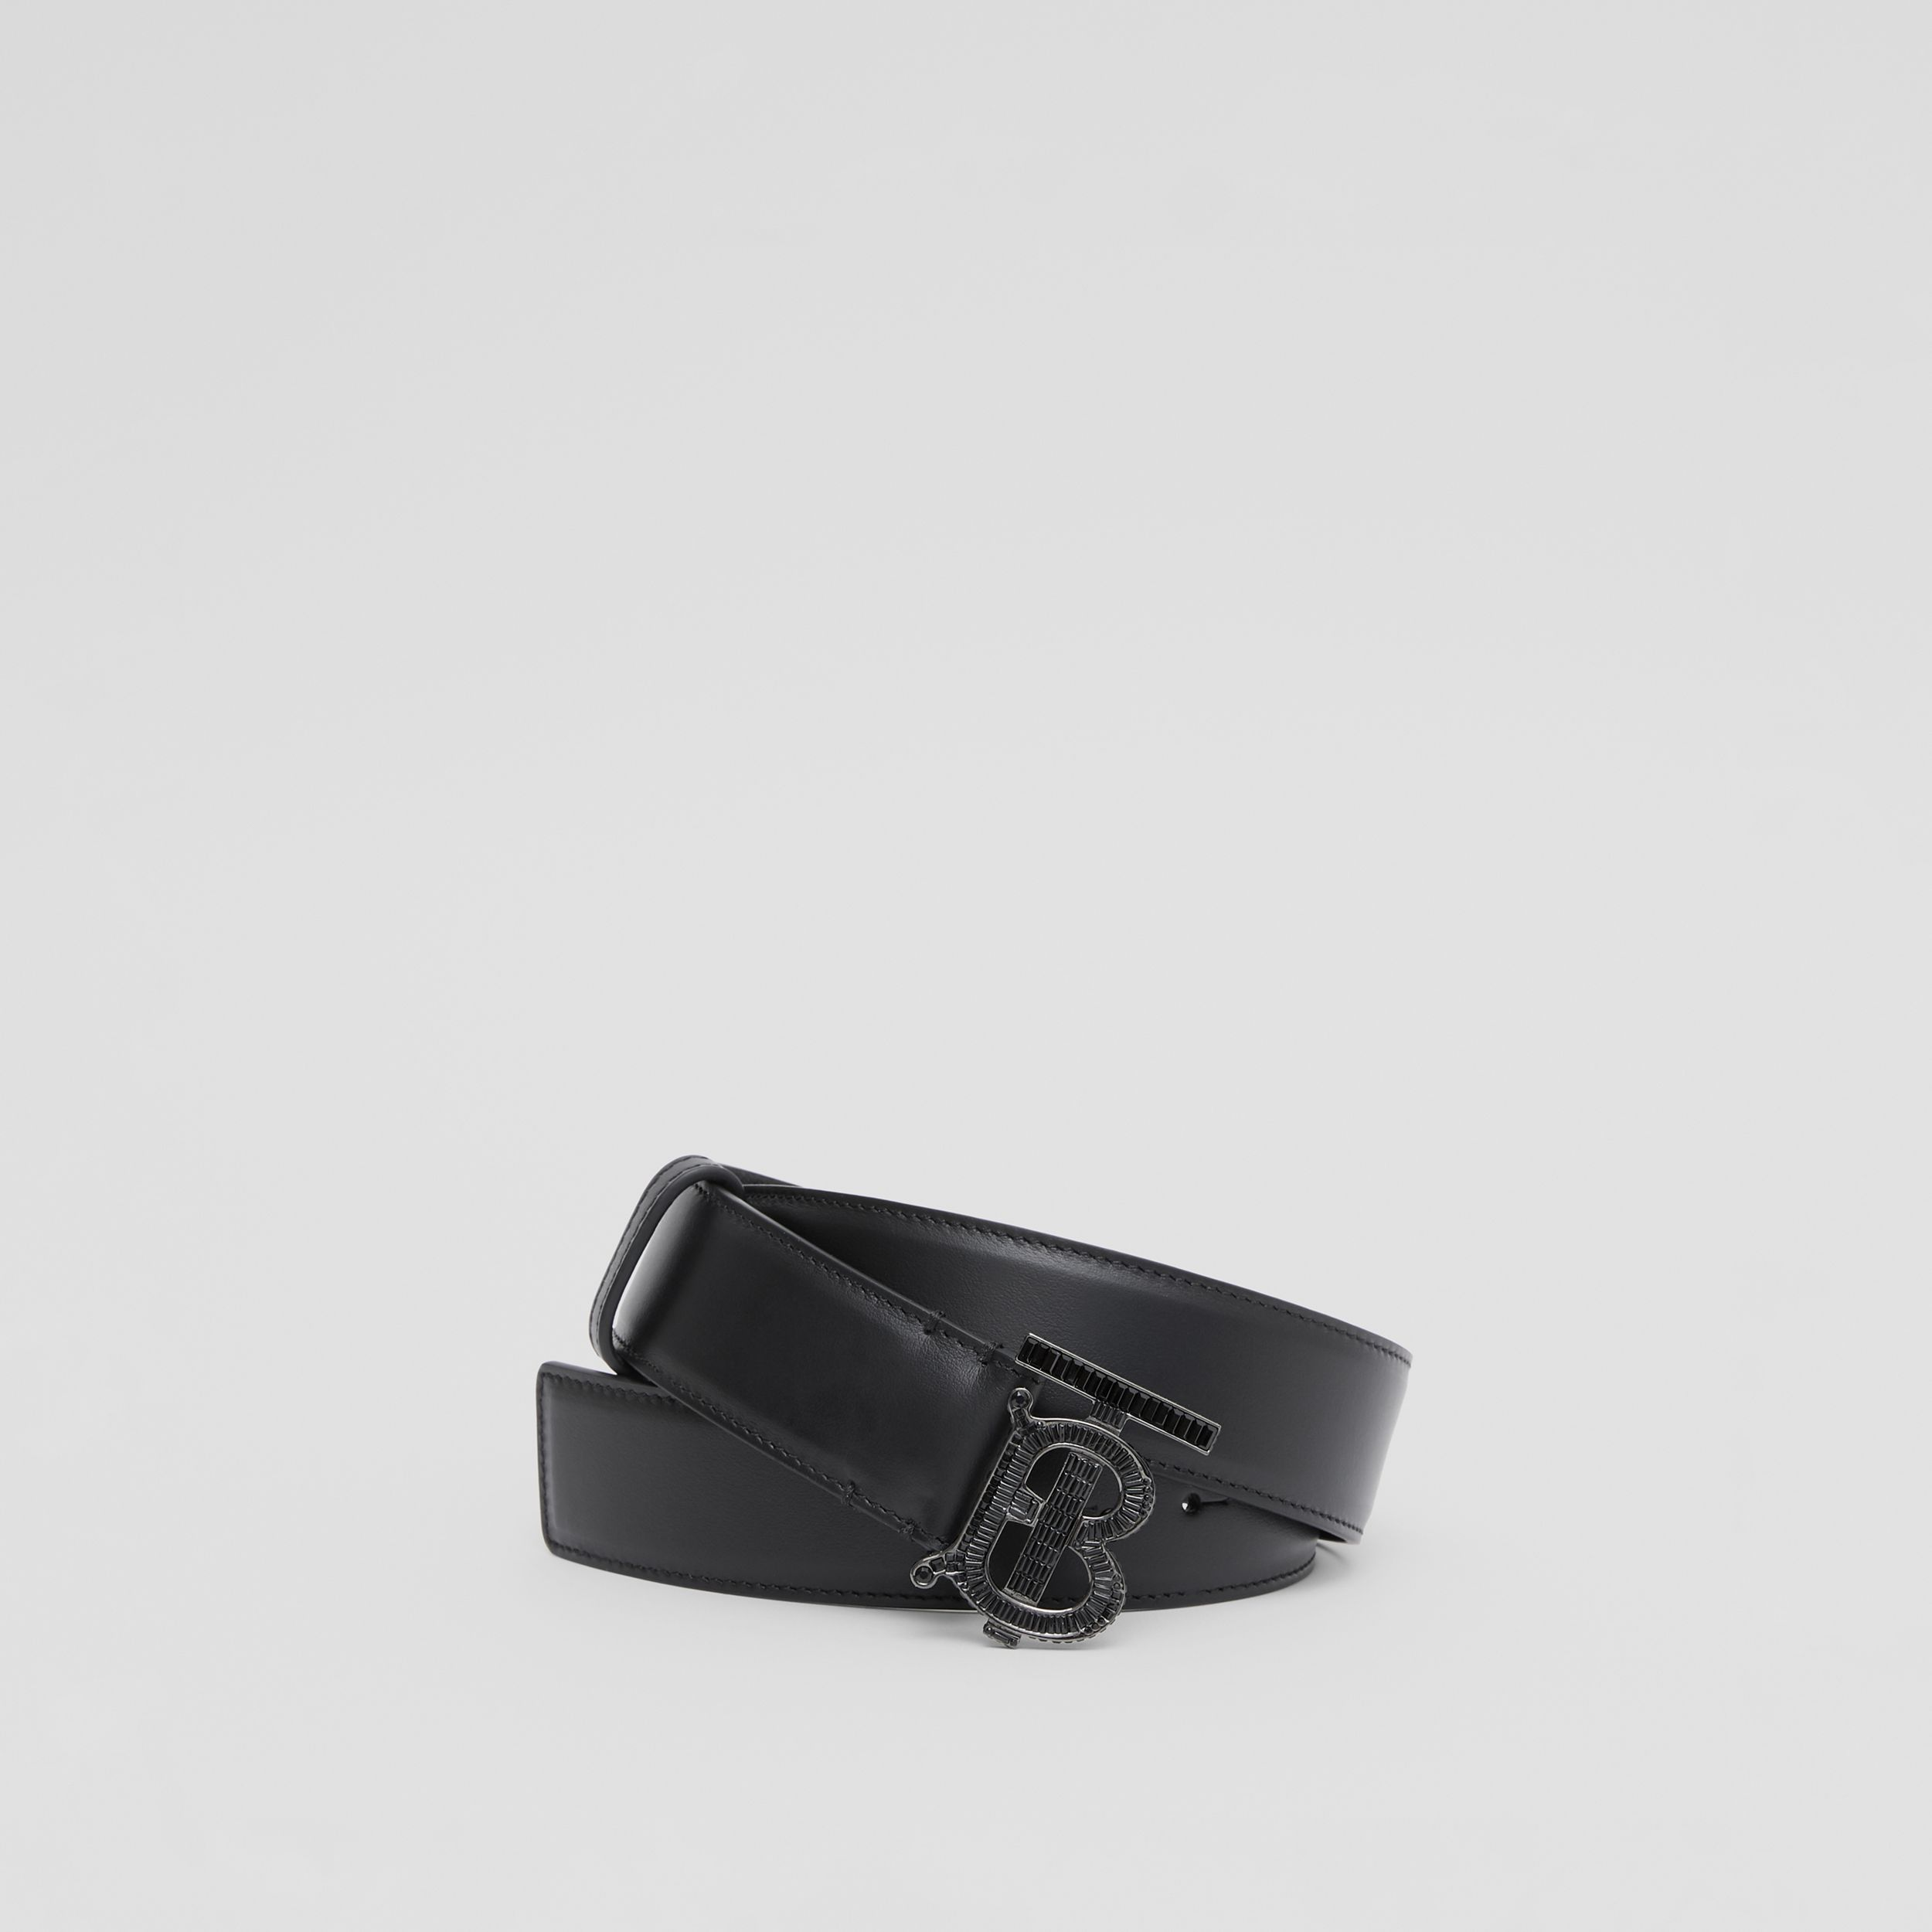 Crystal Monogram Motif Leather Belt in Black | Burberry - 1